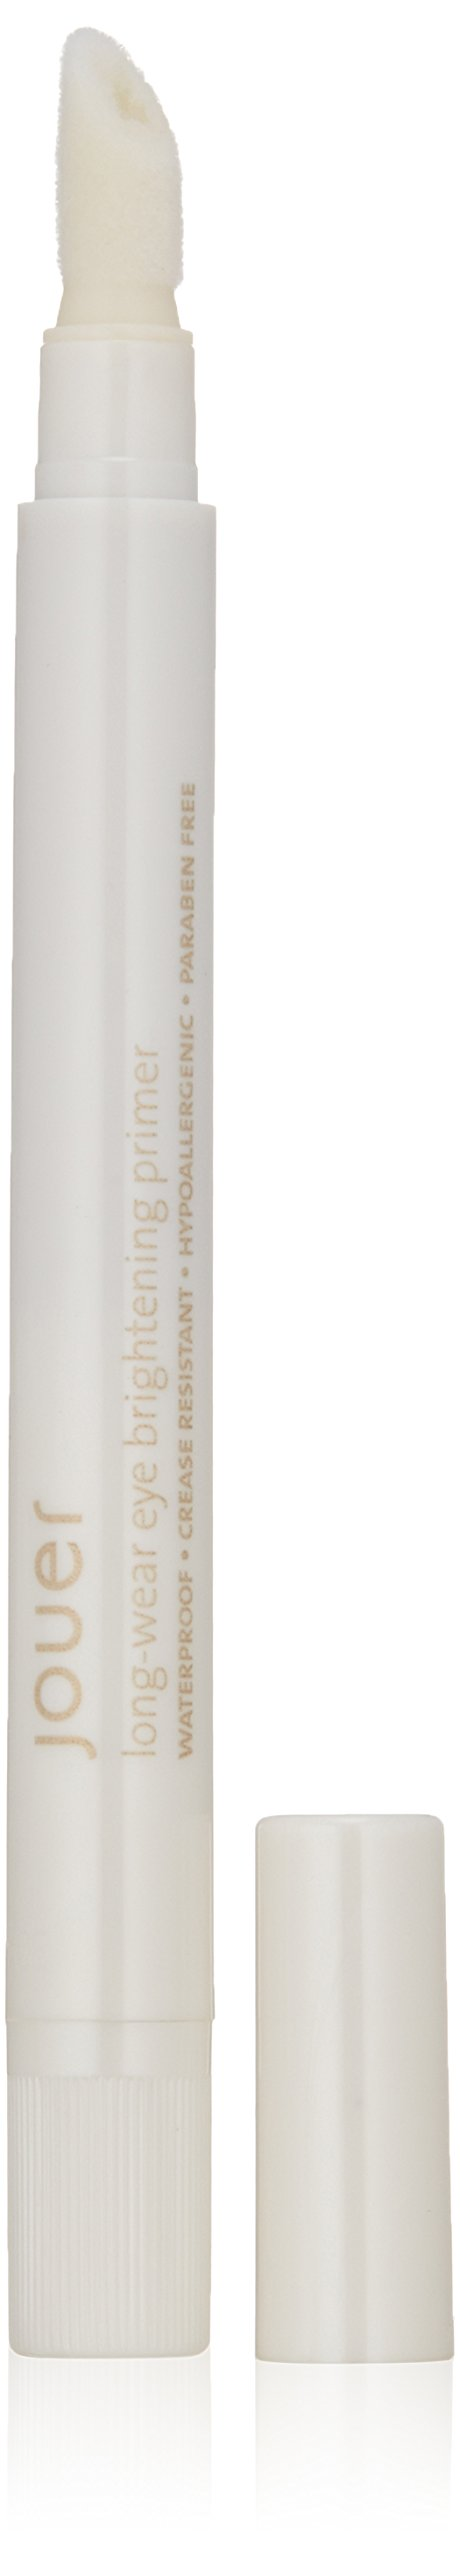 Jouer Long-Wear Eye Brightening Primer